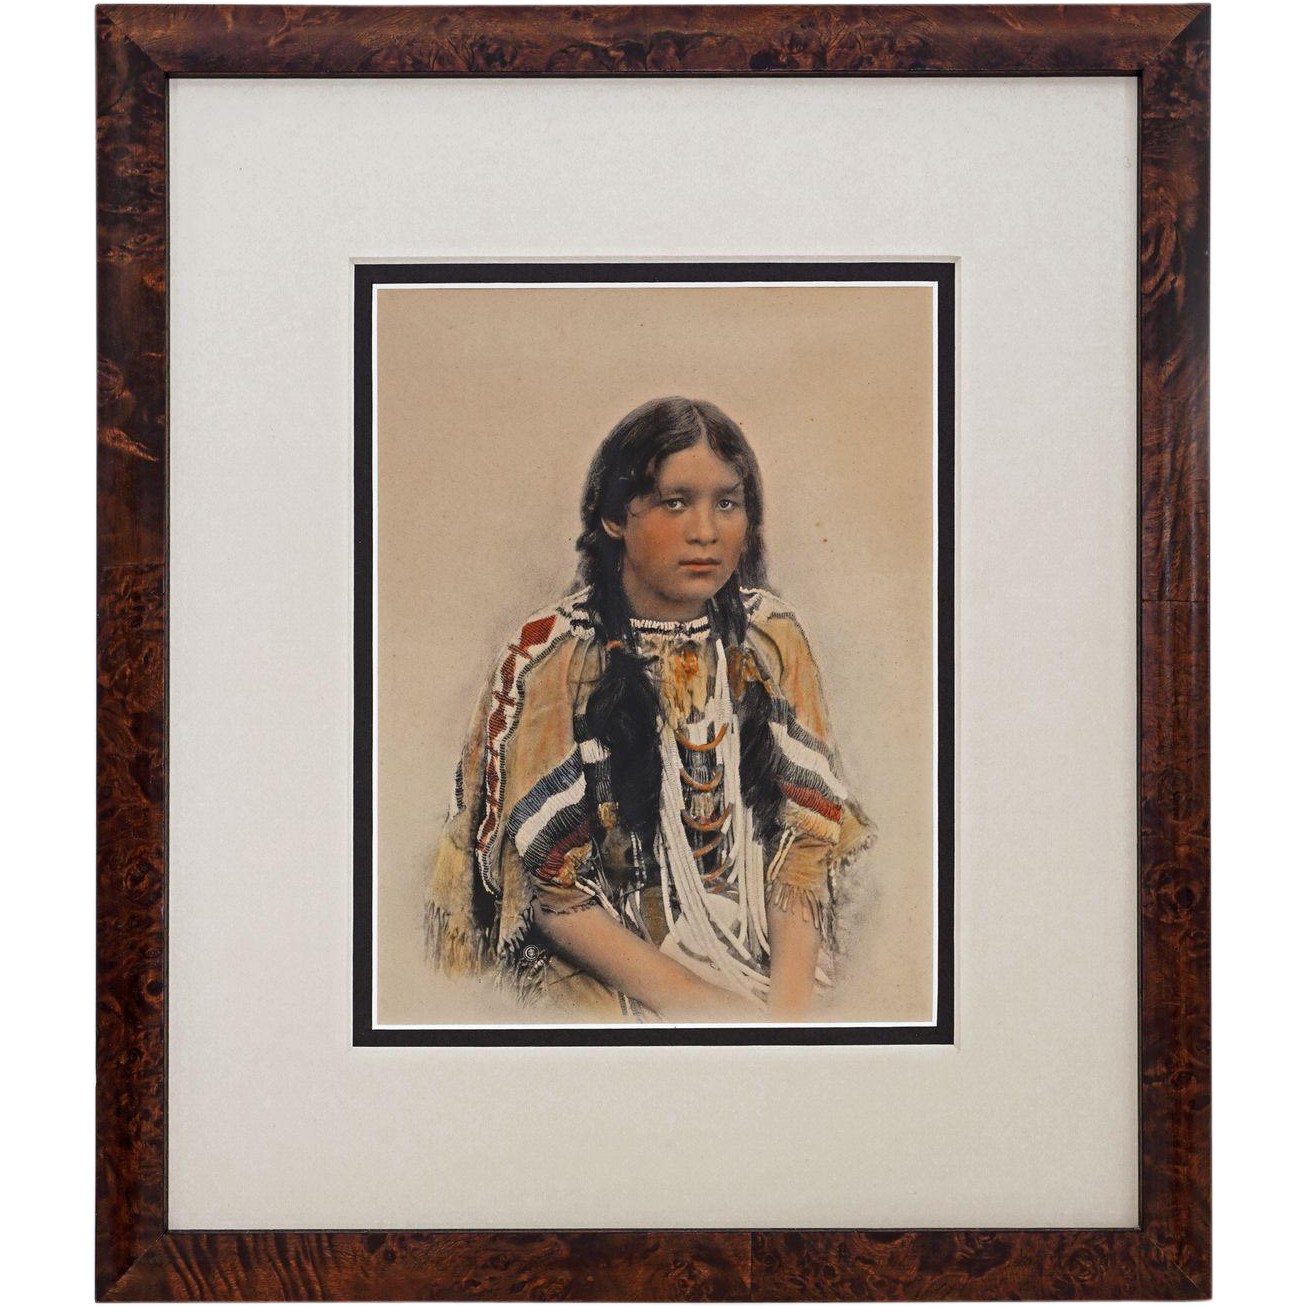 Native American Young Woman / Girl in Beaded Dress Tinted Photograph / Print Framed